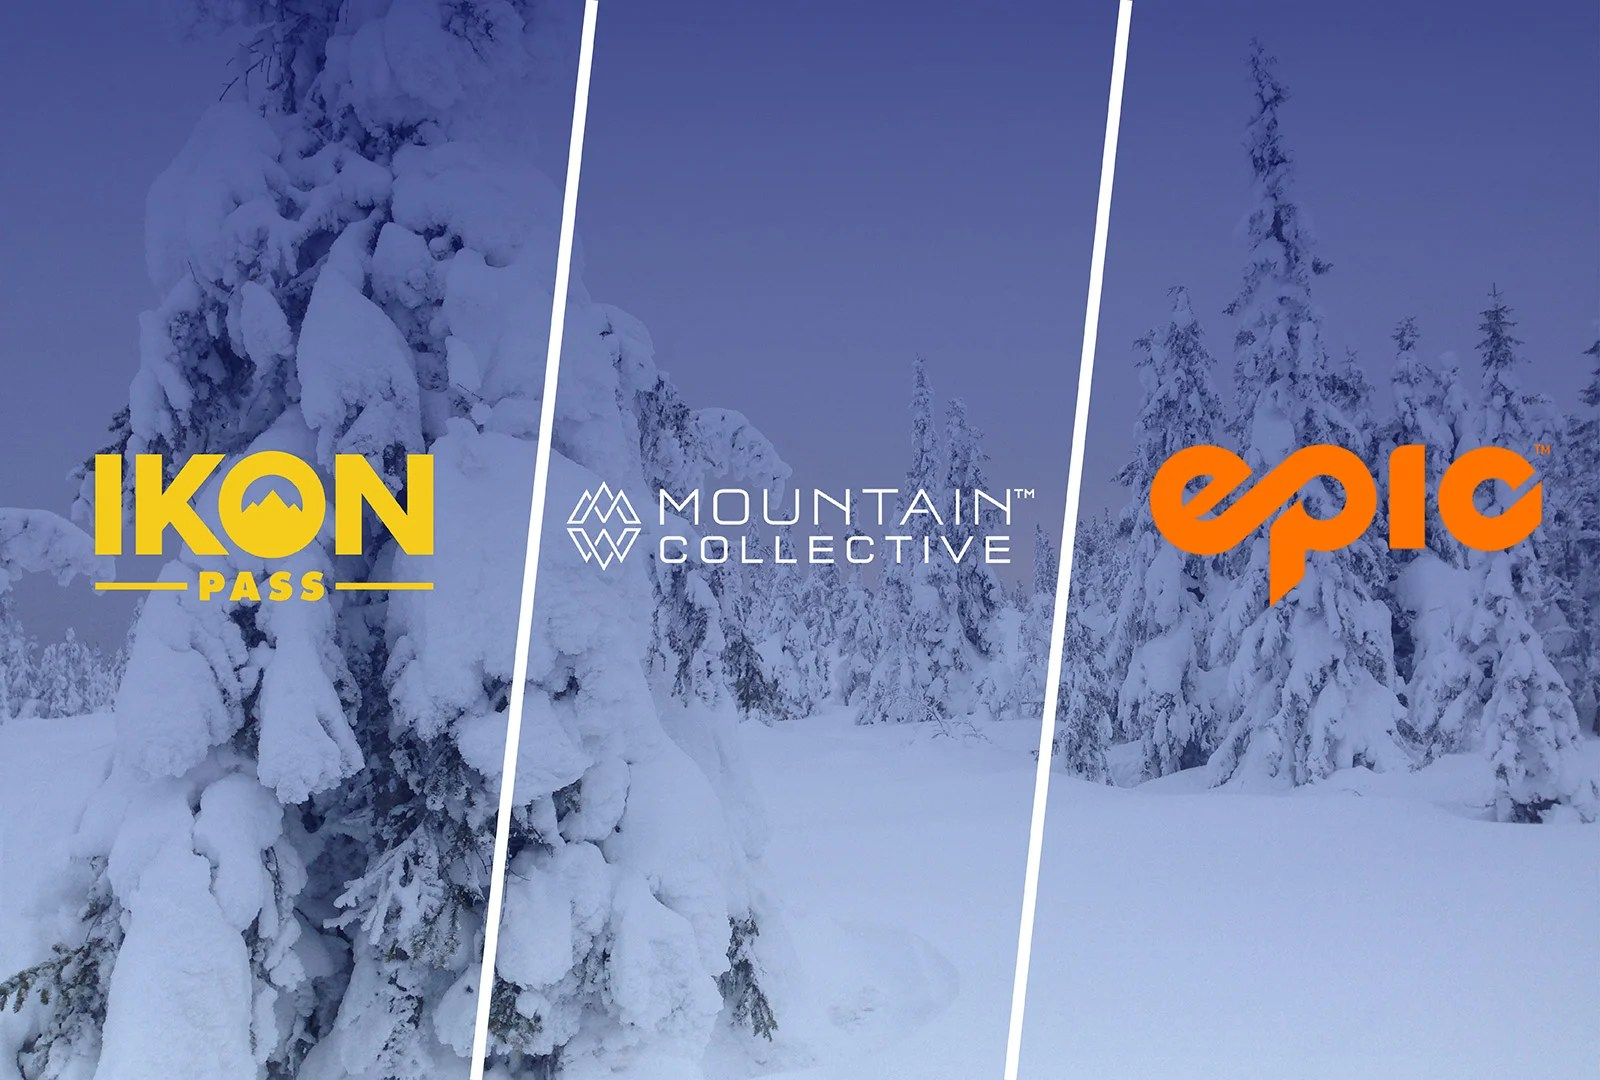 Best annual ski pass: Epic vs. Ikon vs. Mountain Collective